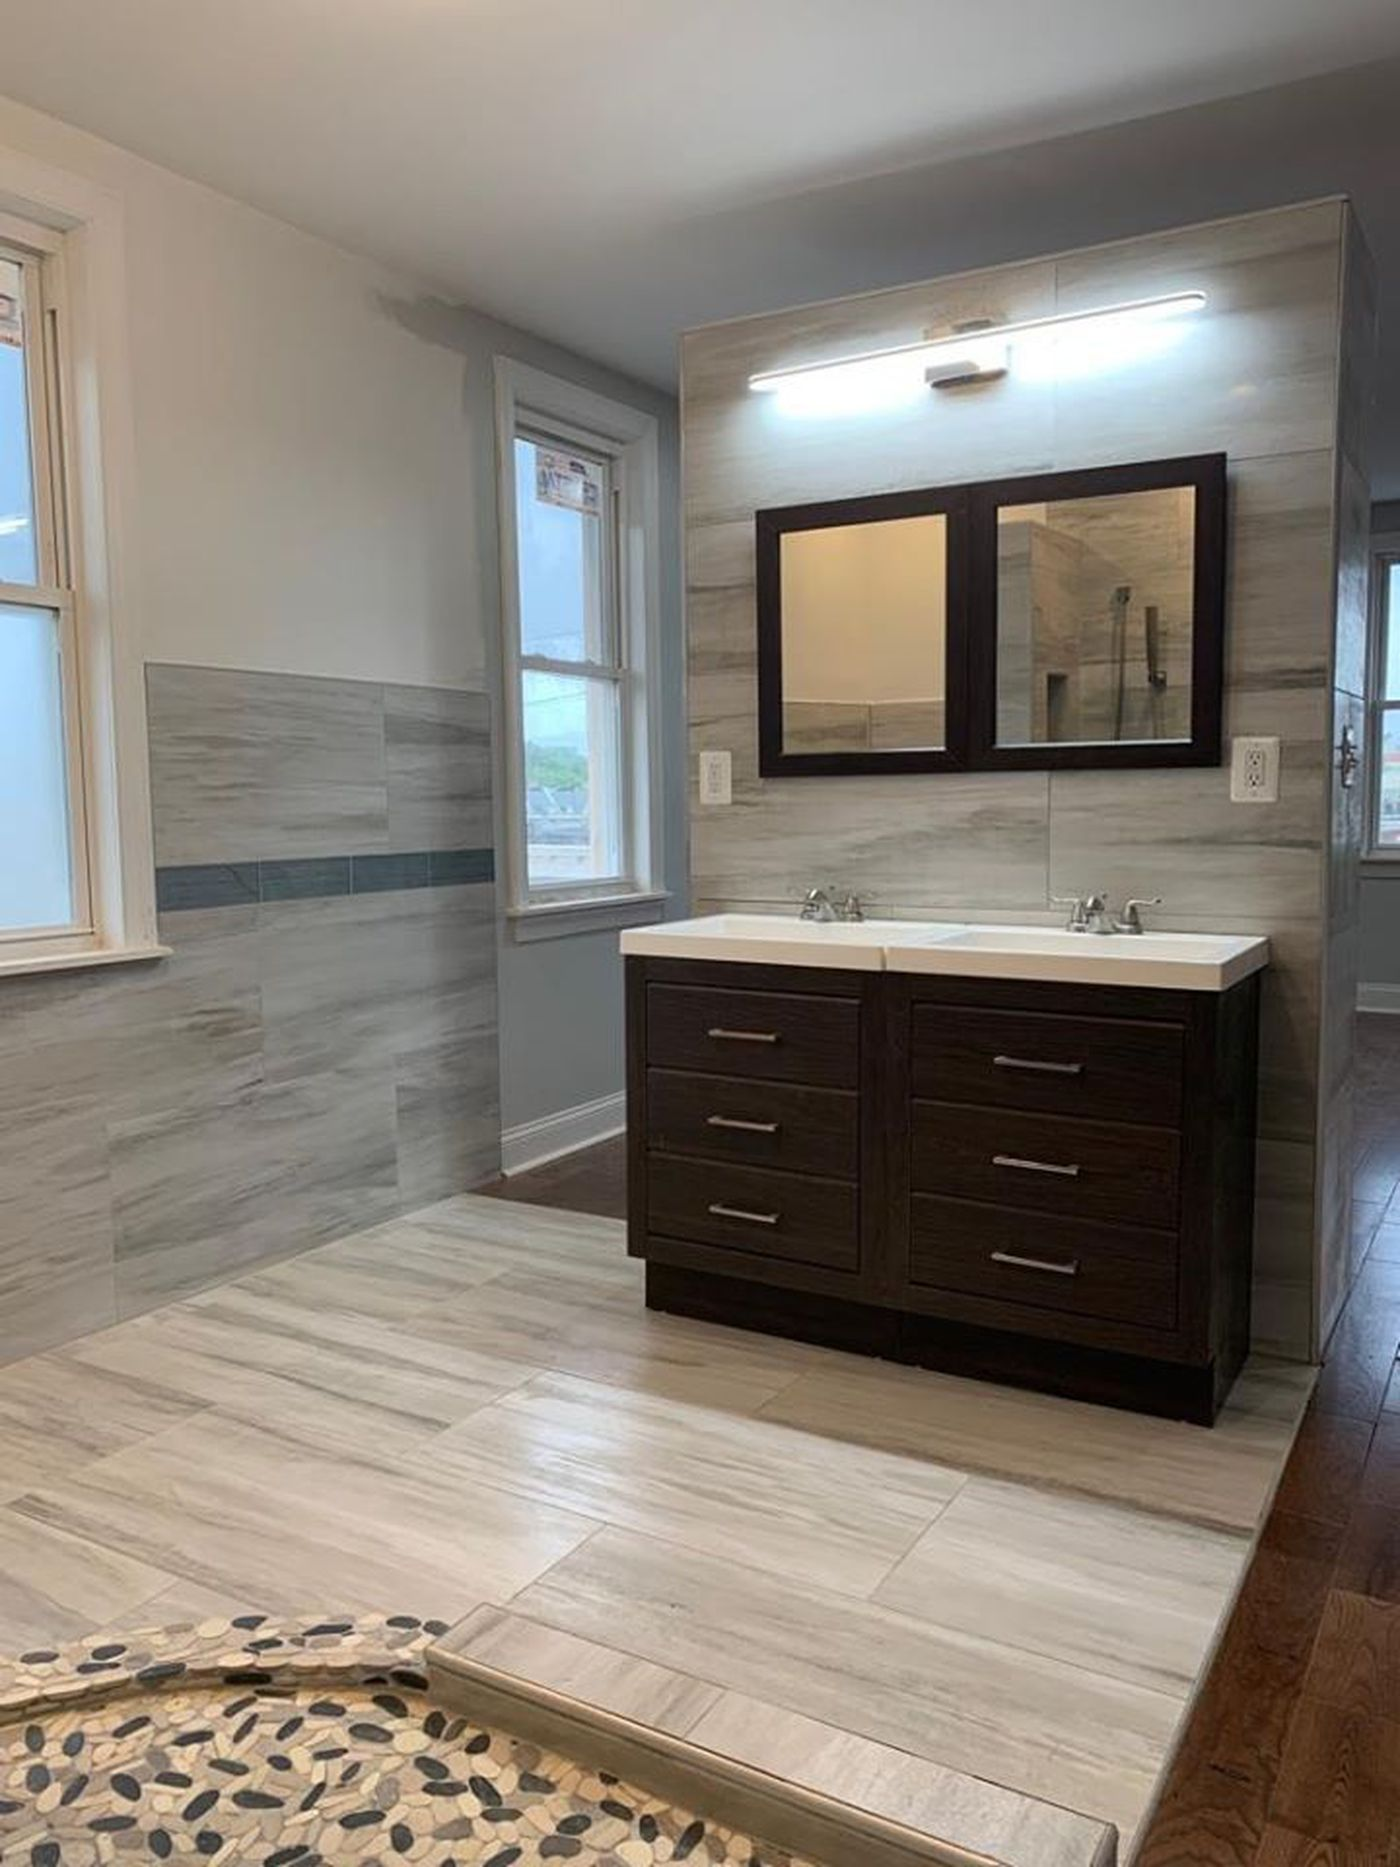 A Bathroom Without Doors A West Philly Apartment Tests The Market